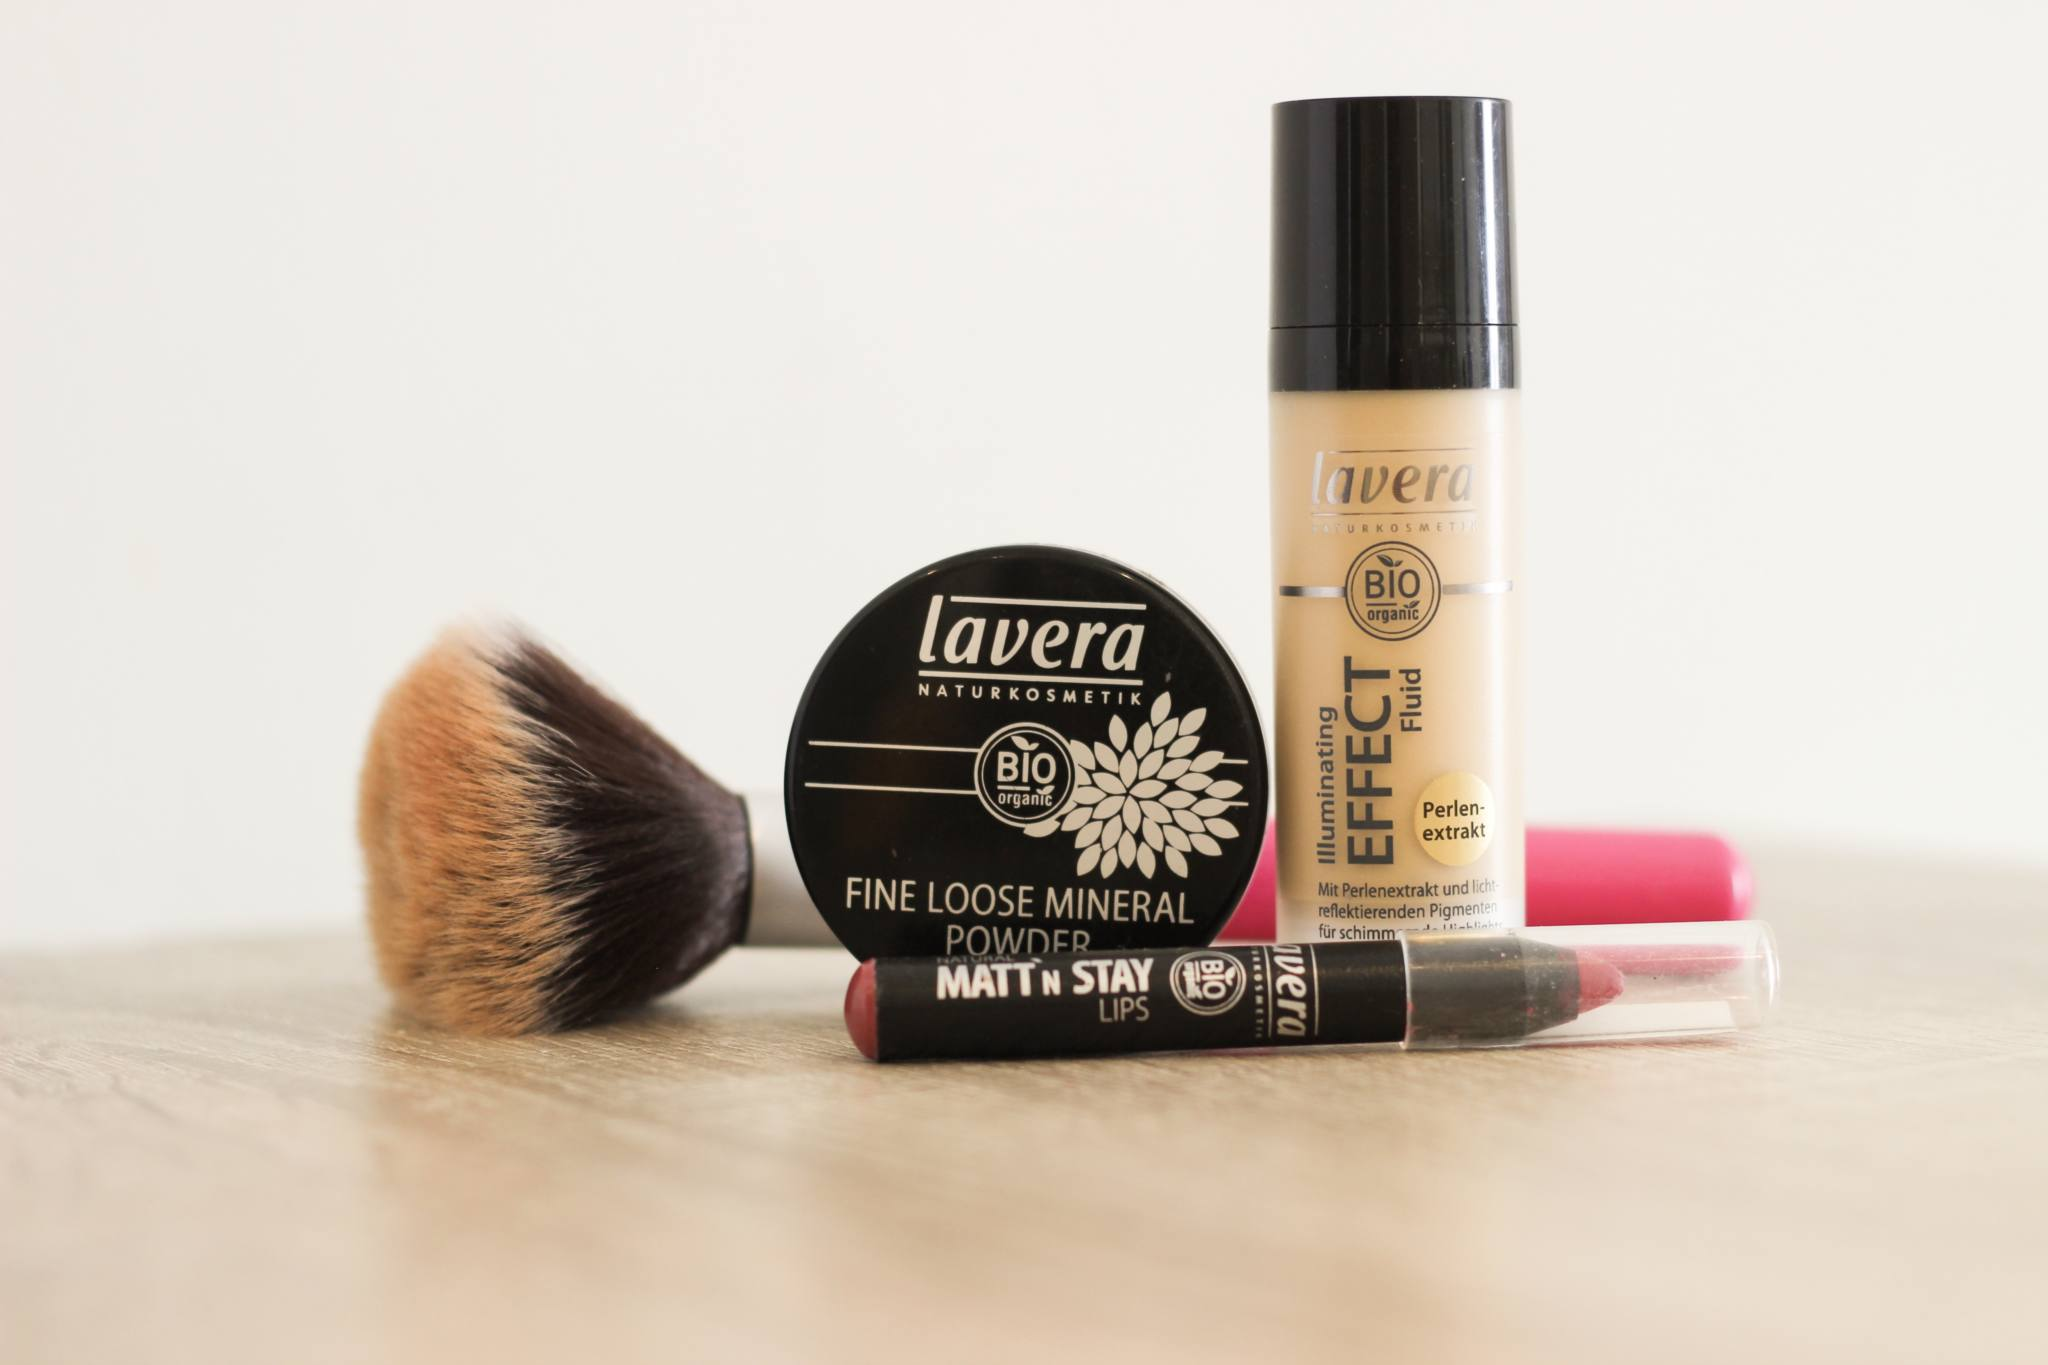 Lavera Make- Up Landscape Products